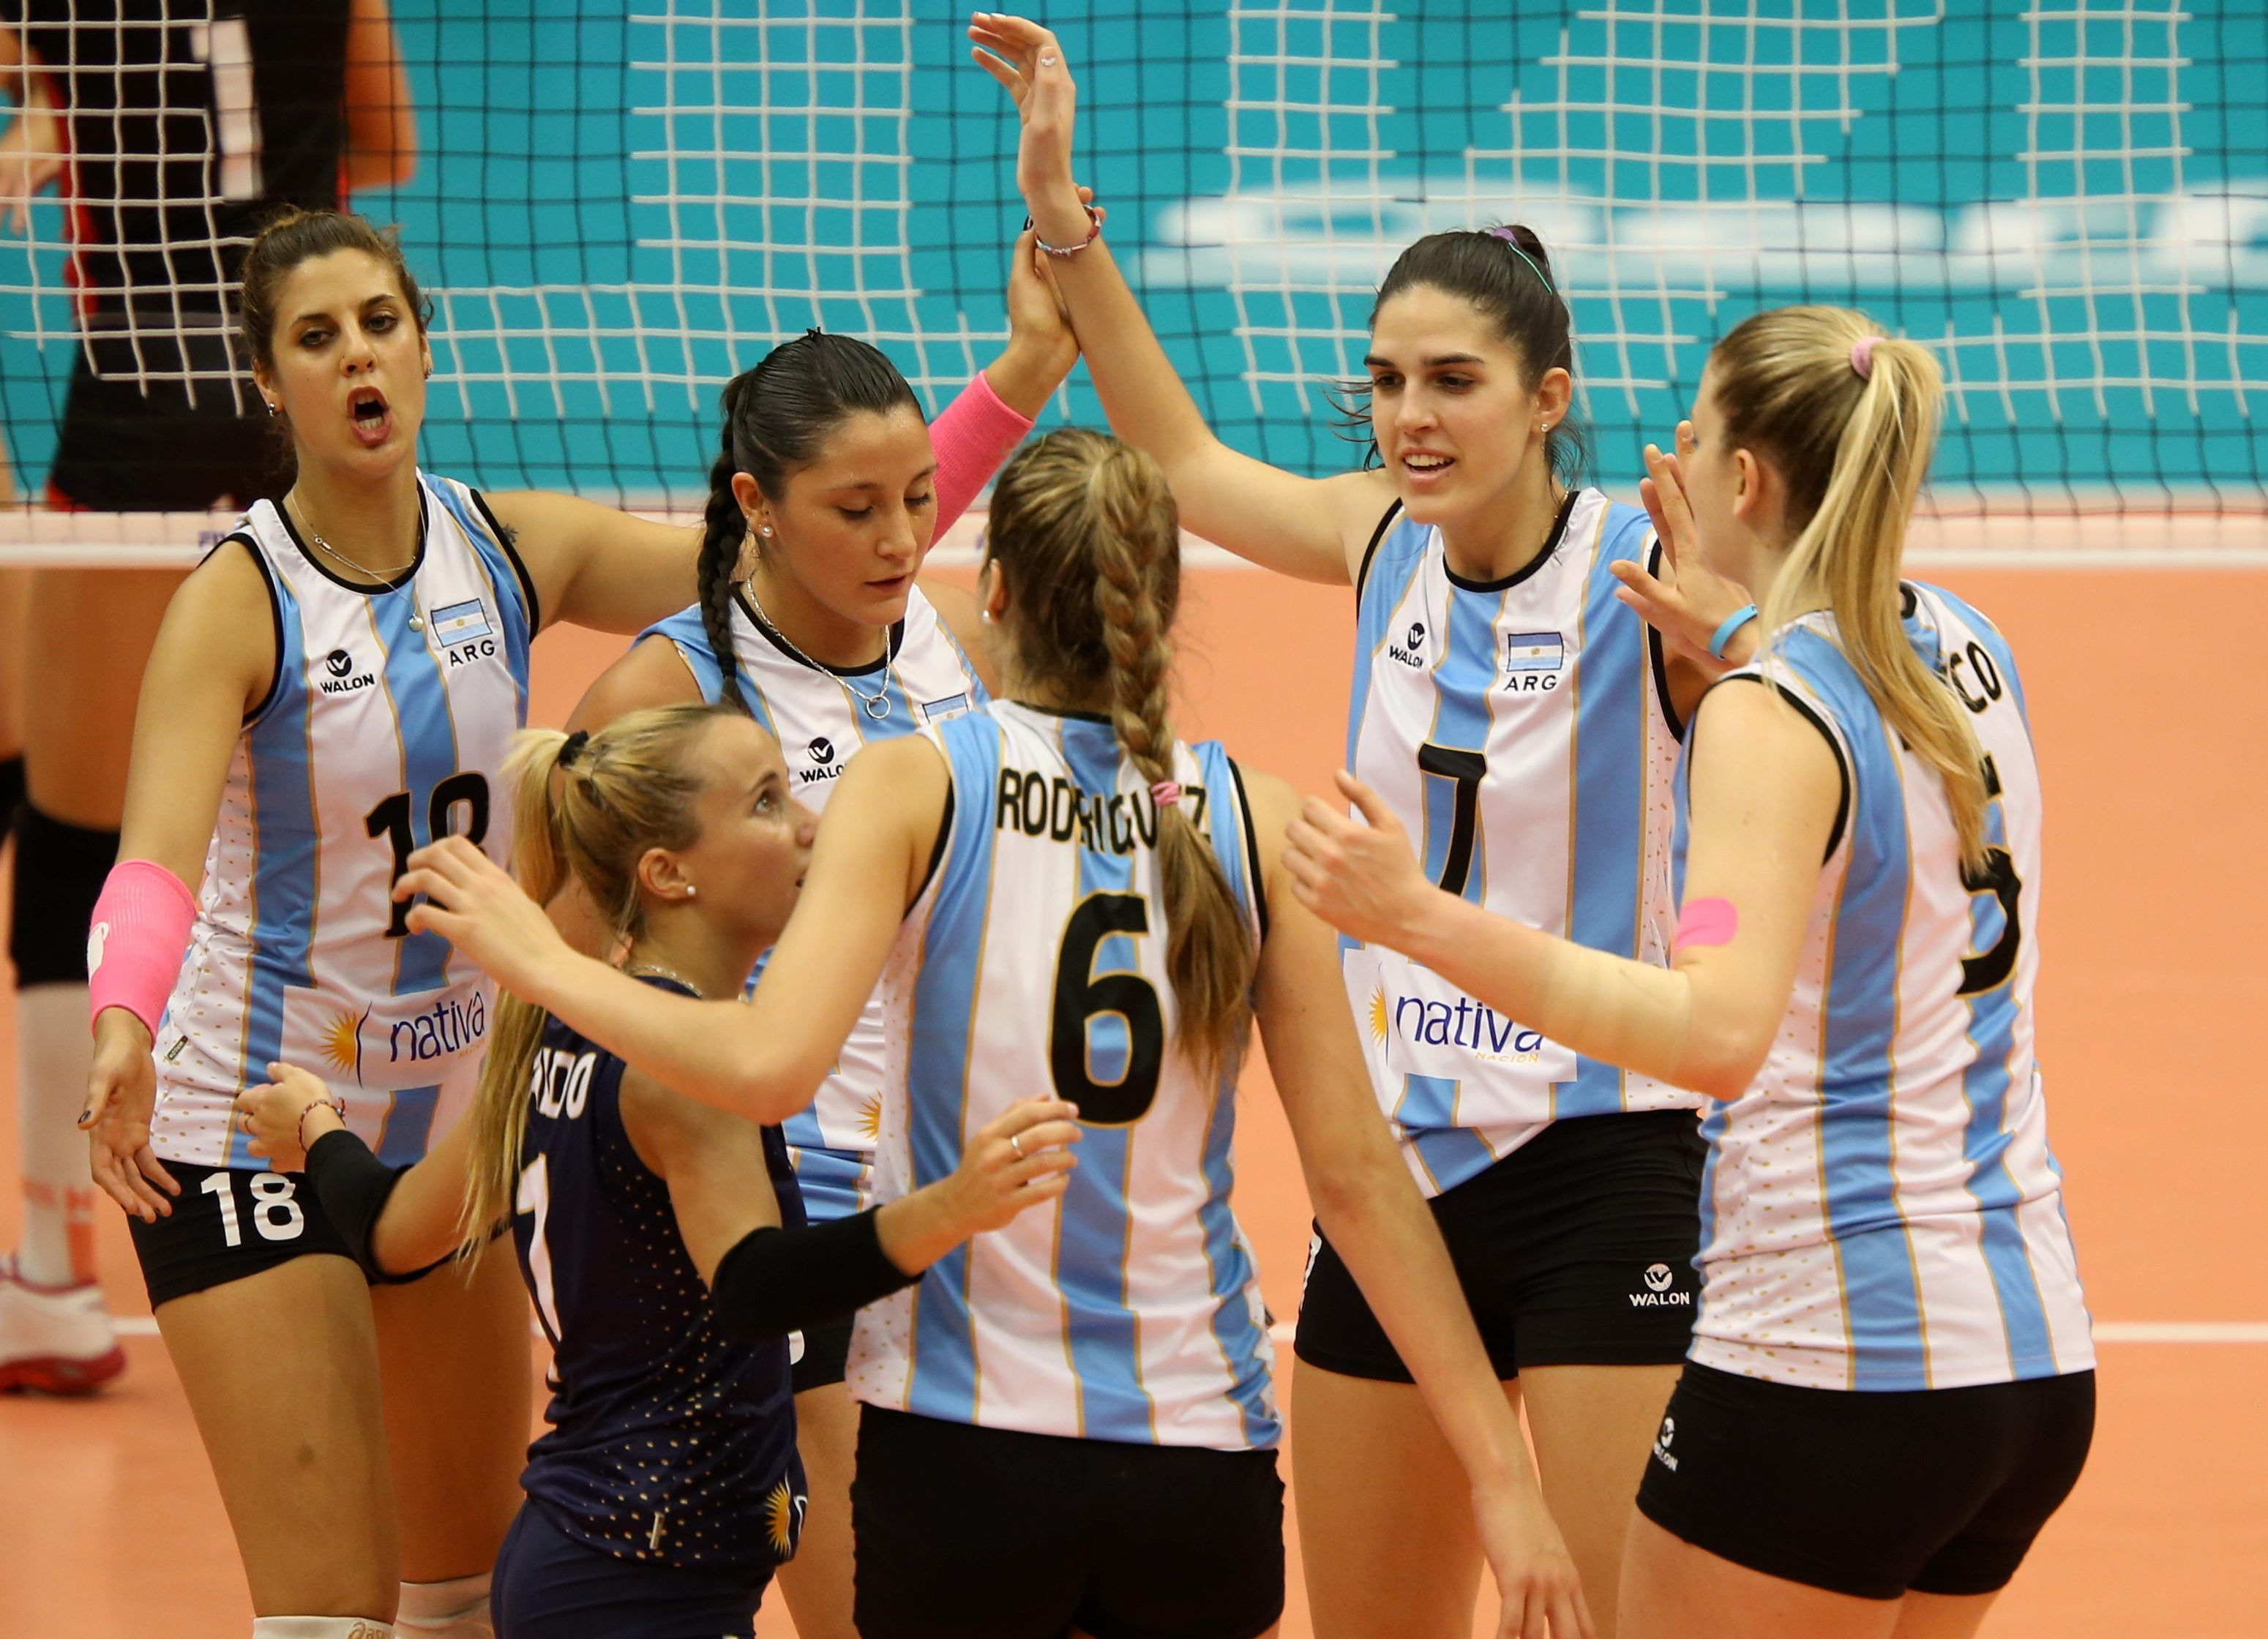 Argentina V Croatia Fivb Volleyball Womens World Championship Live Stream Volleyball Live Volleyball Argentina